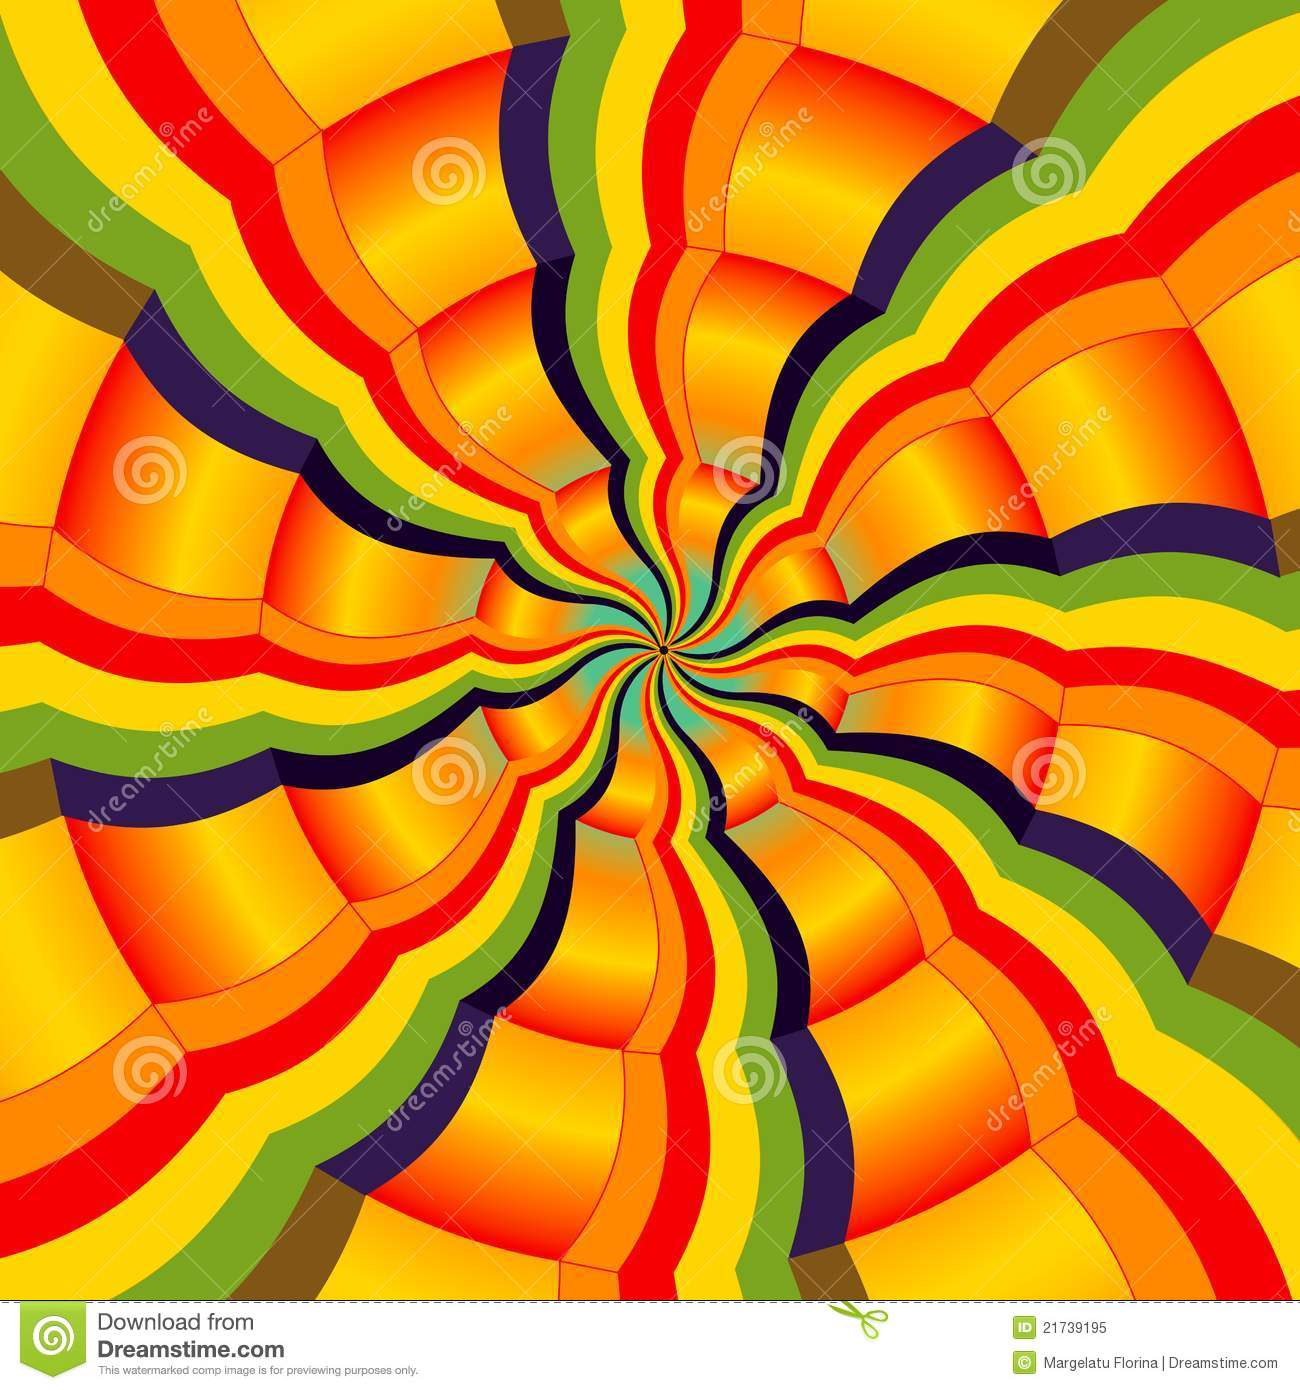 Abstract colorful radial spectrum